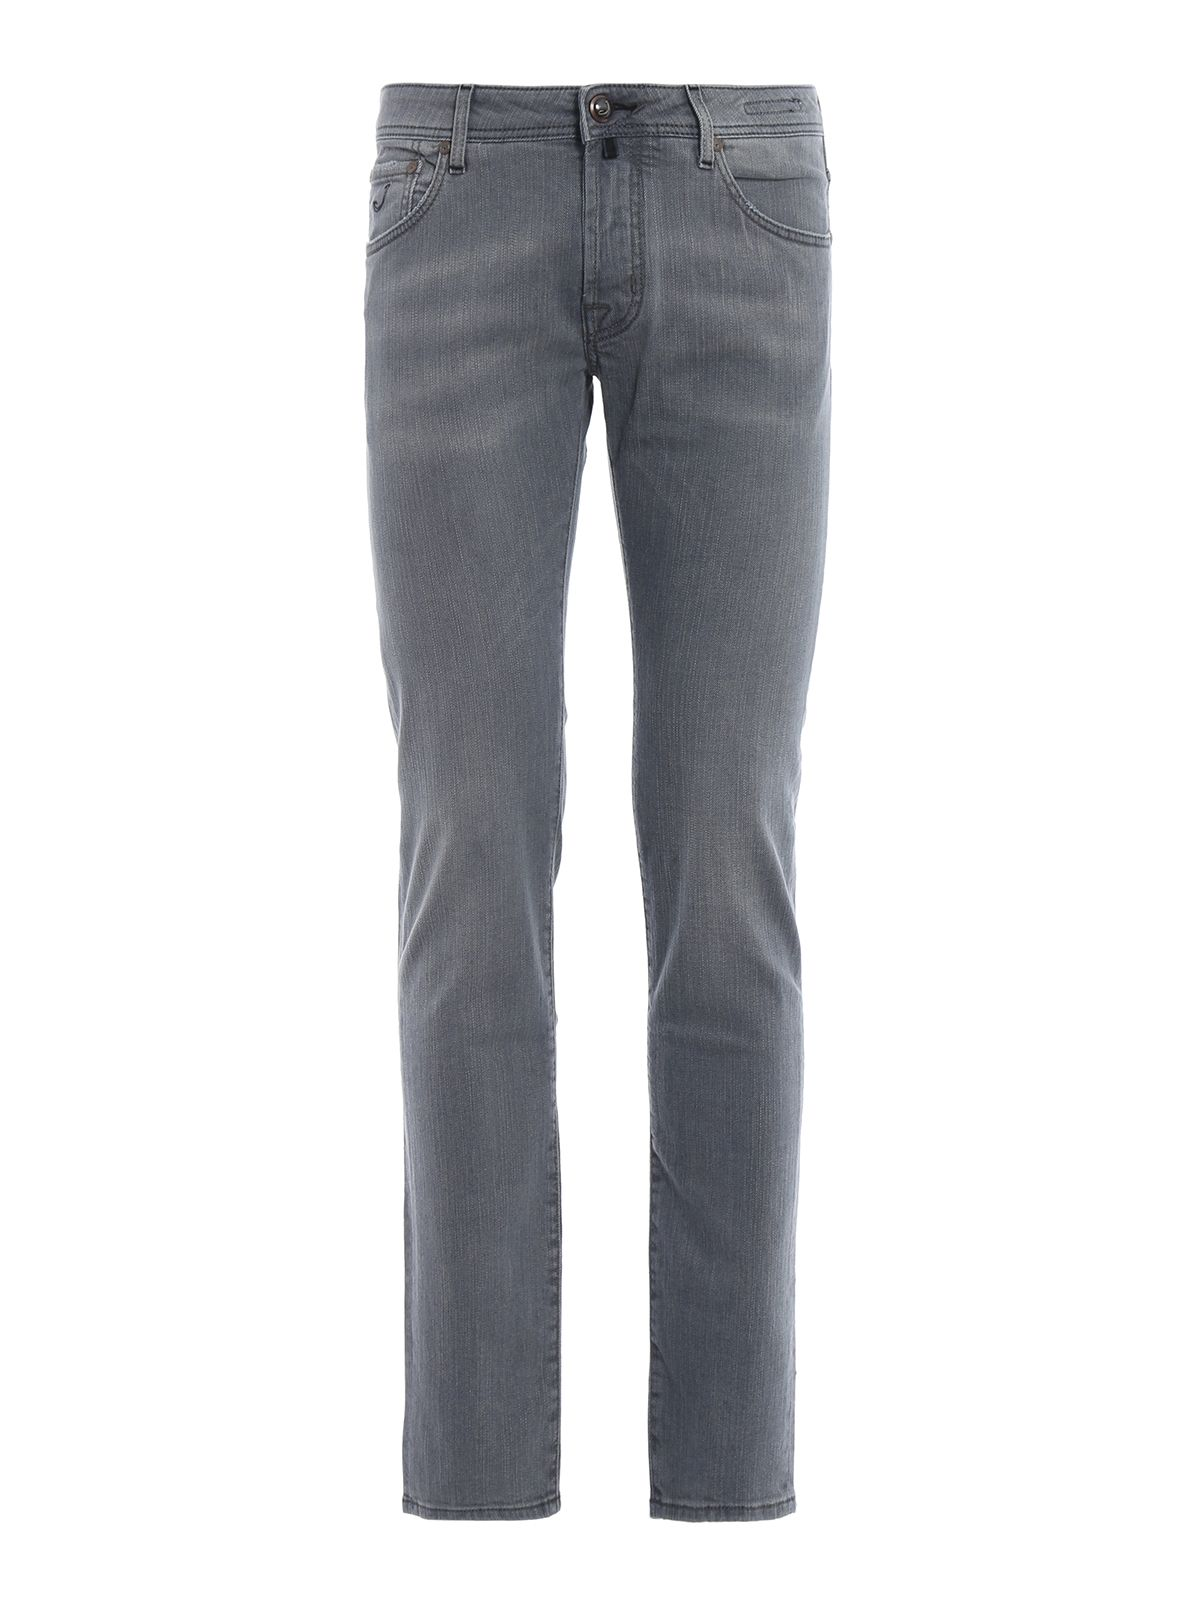 Jacob Cohen J622 Comf Grey Light Wash Tailored Jeans